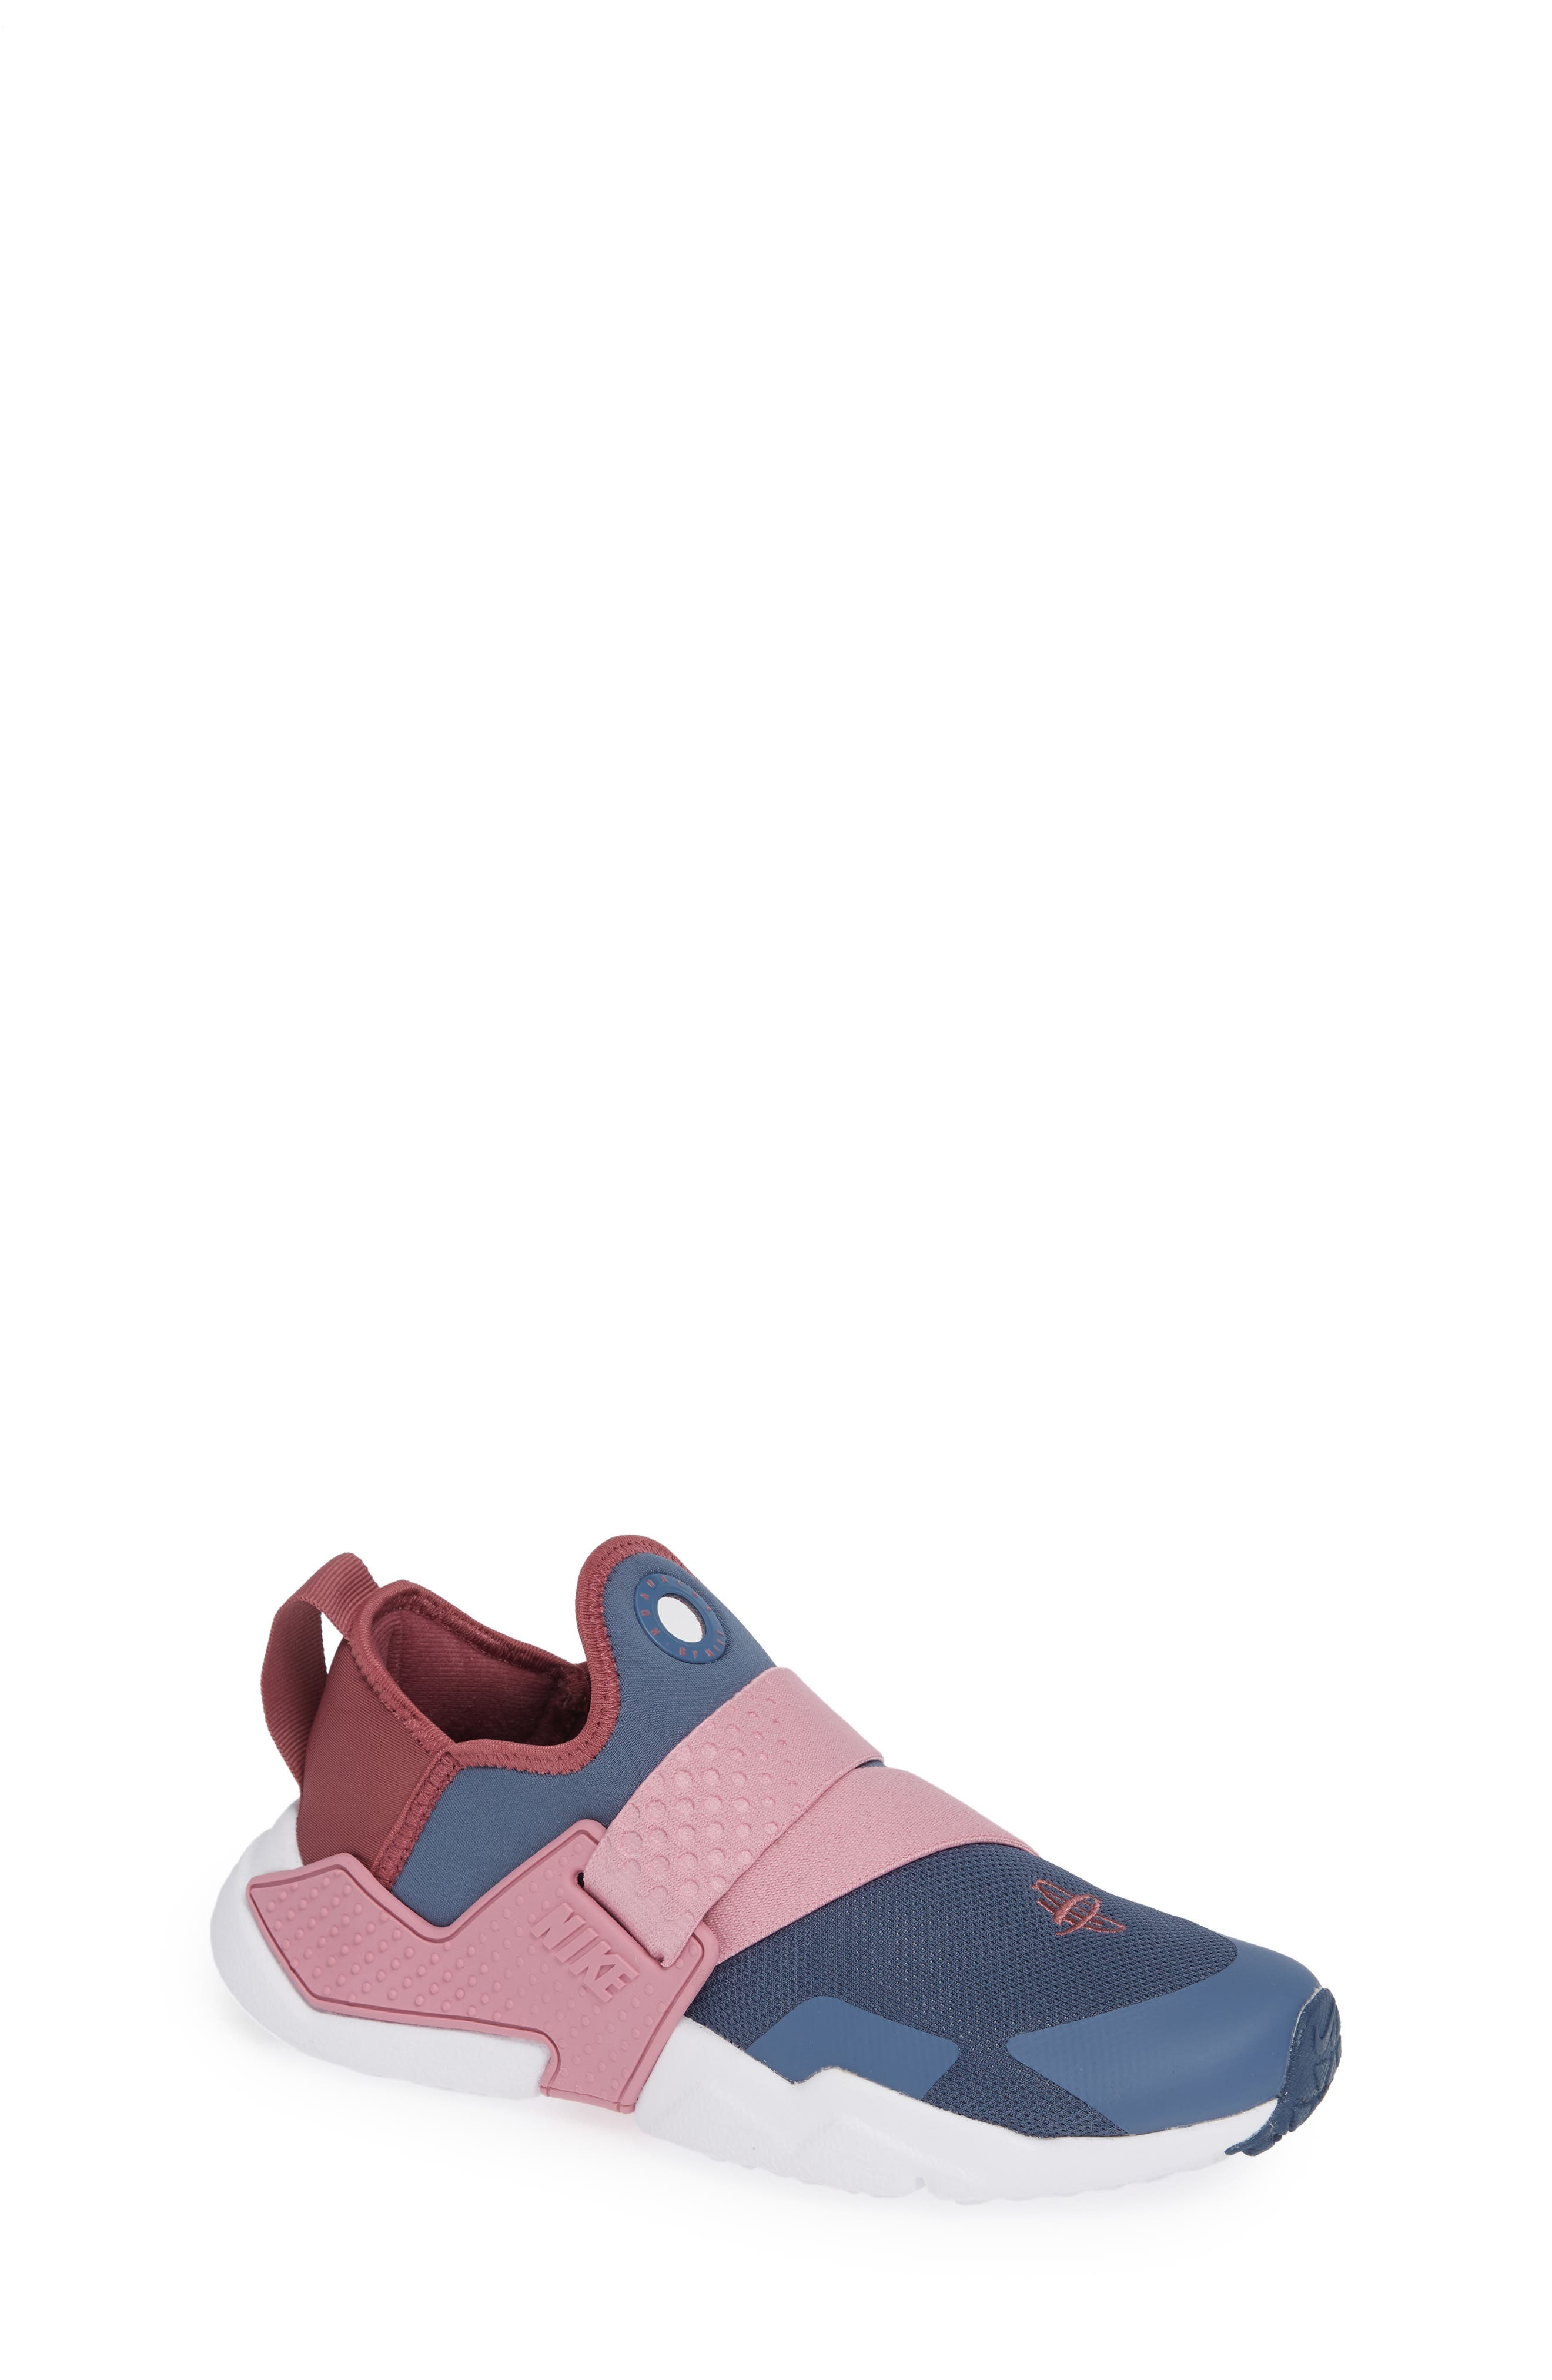 Huarache Extreme Sneaker, Main, color, DIFFUSED BLUE